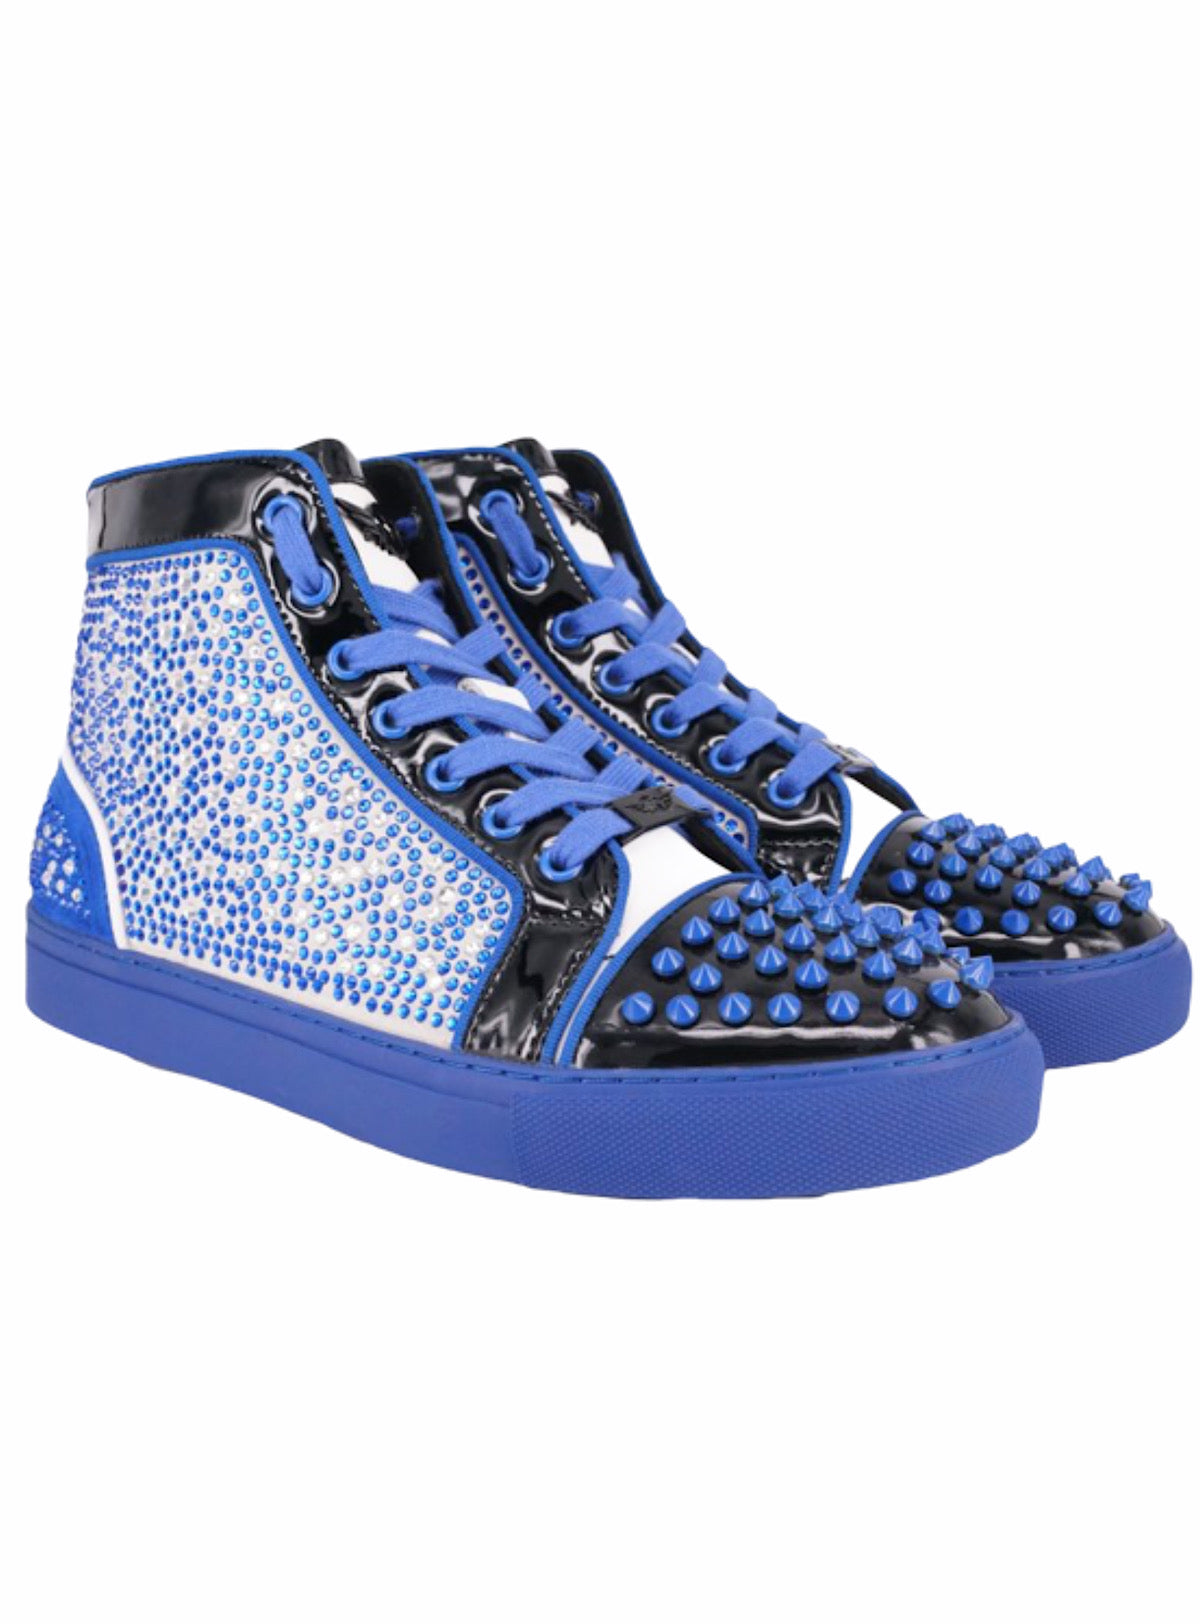 Ferrari Massari Shoes - The Razr Drip - Blue